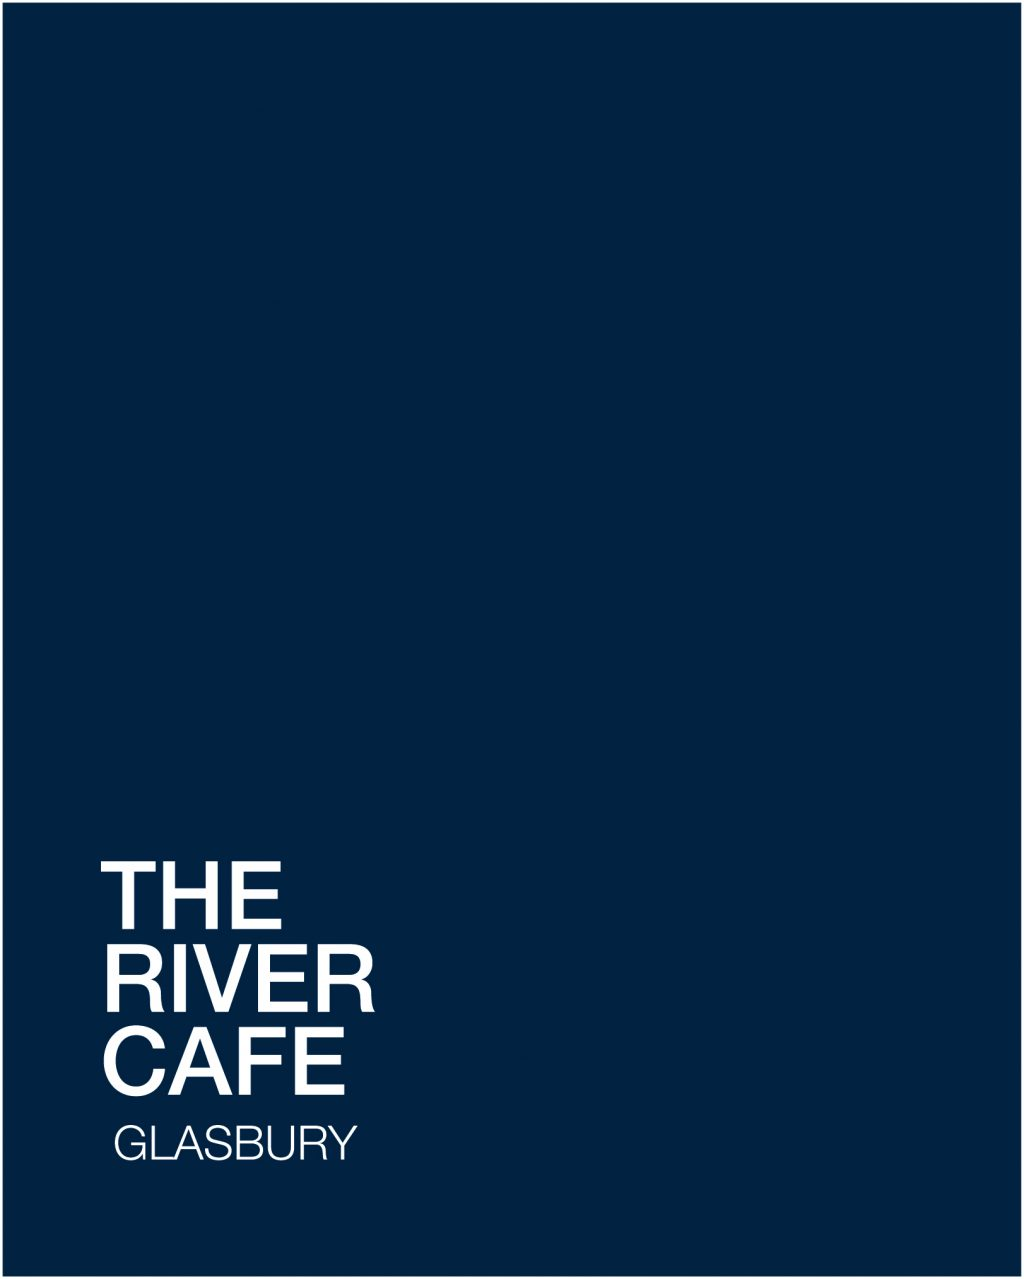 Copy of CAFE LOGO.jpg